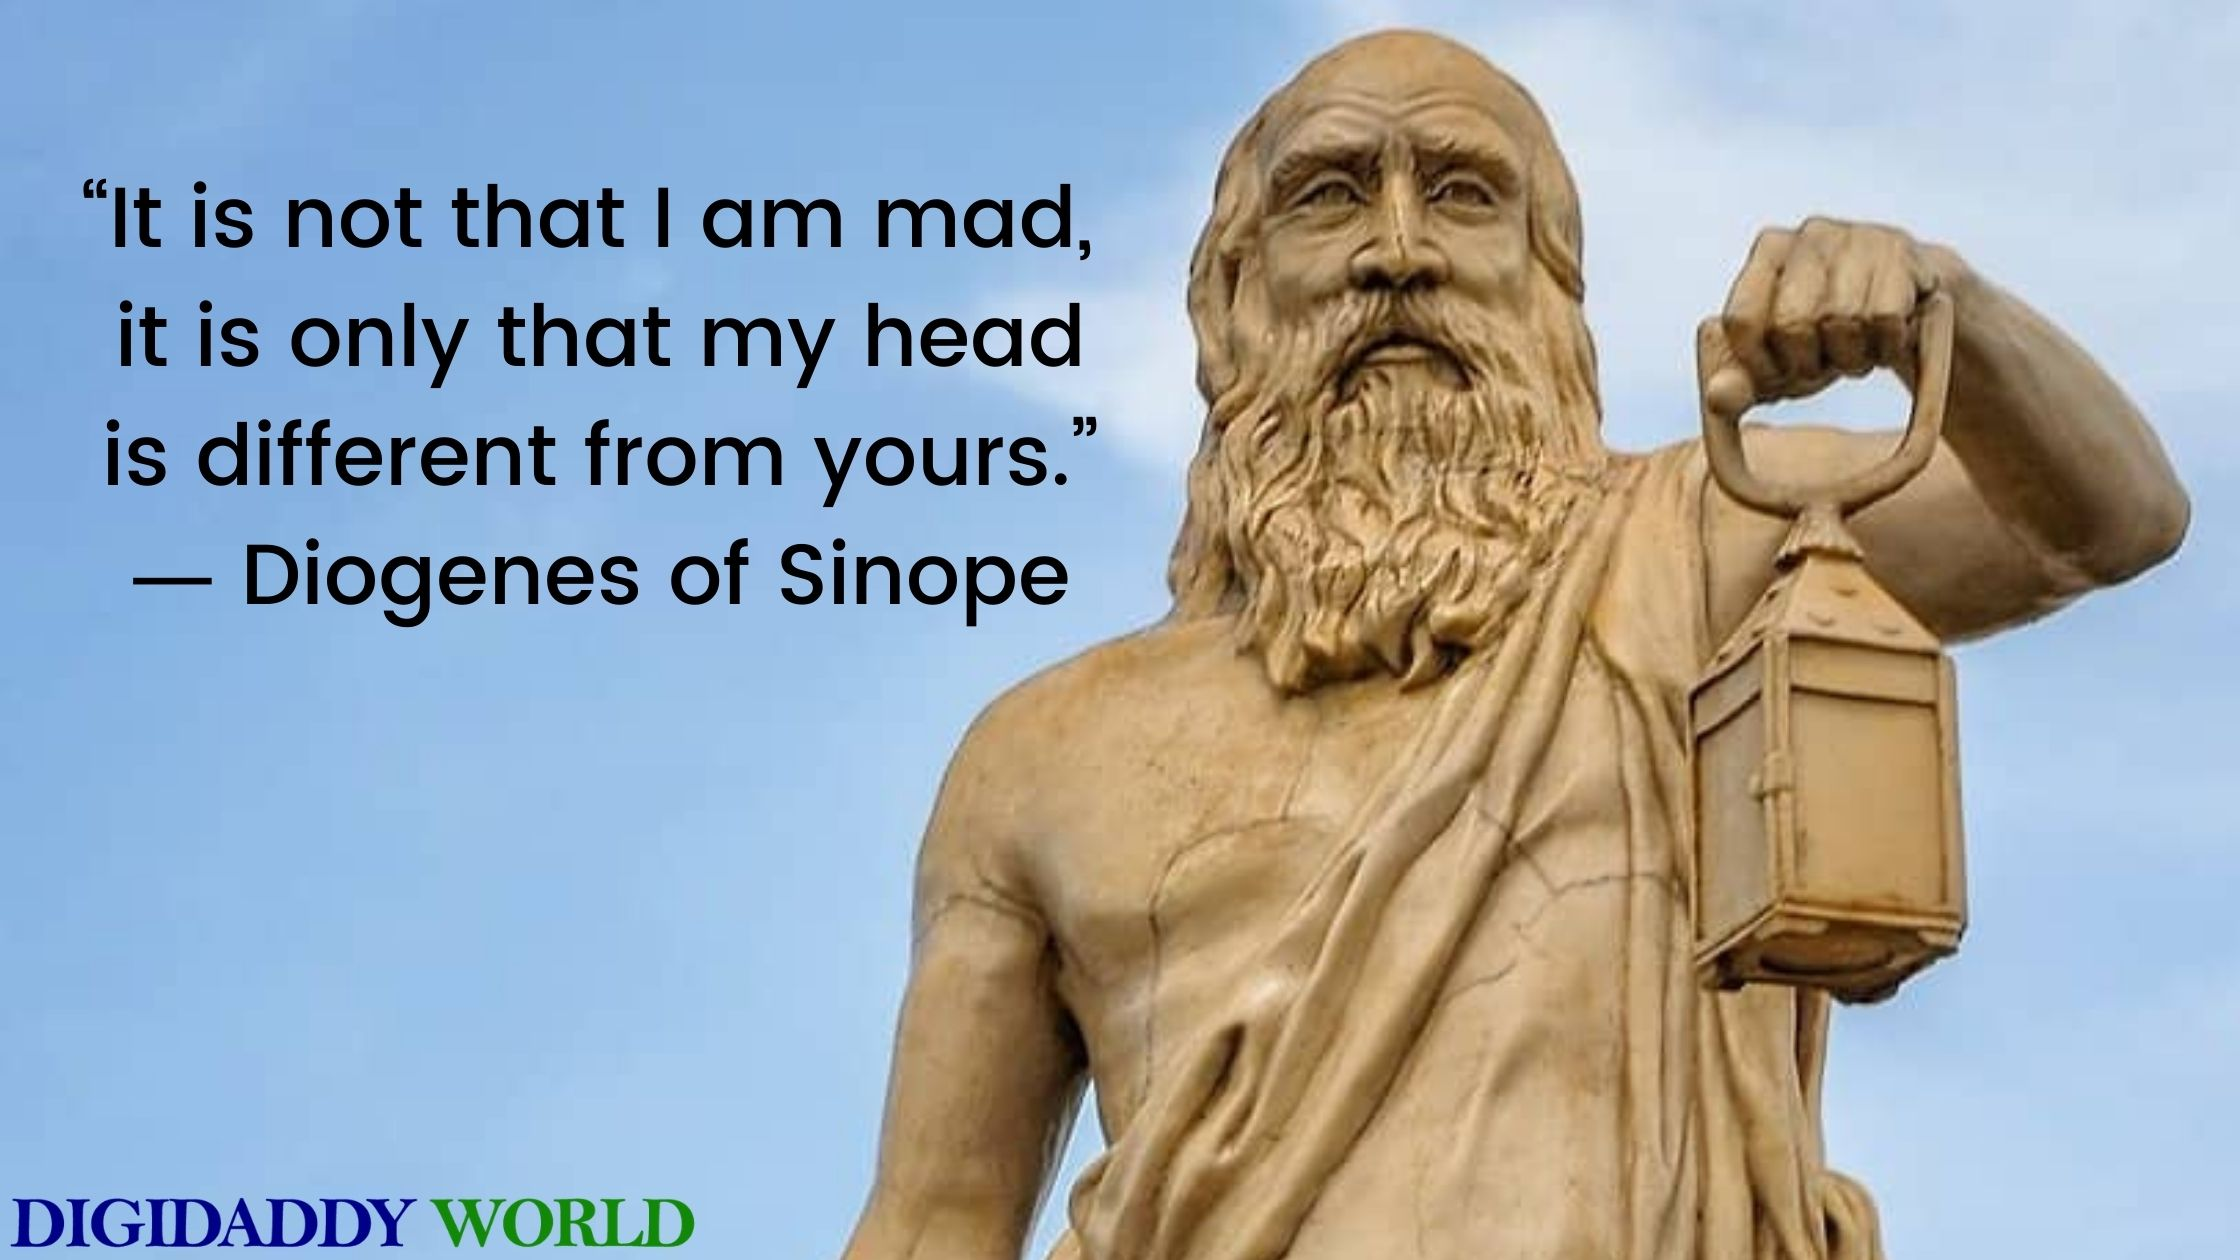 Best Philosopher Diogenes The Cynic of Sinope Quotes